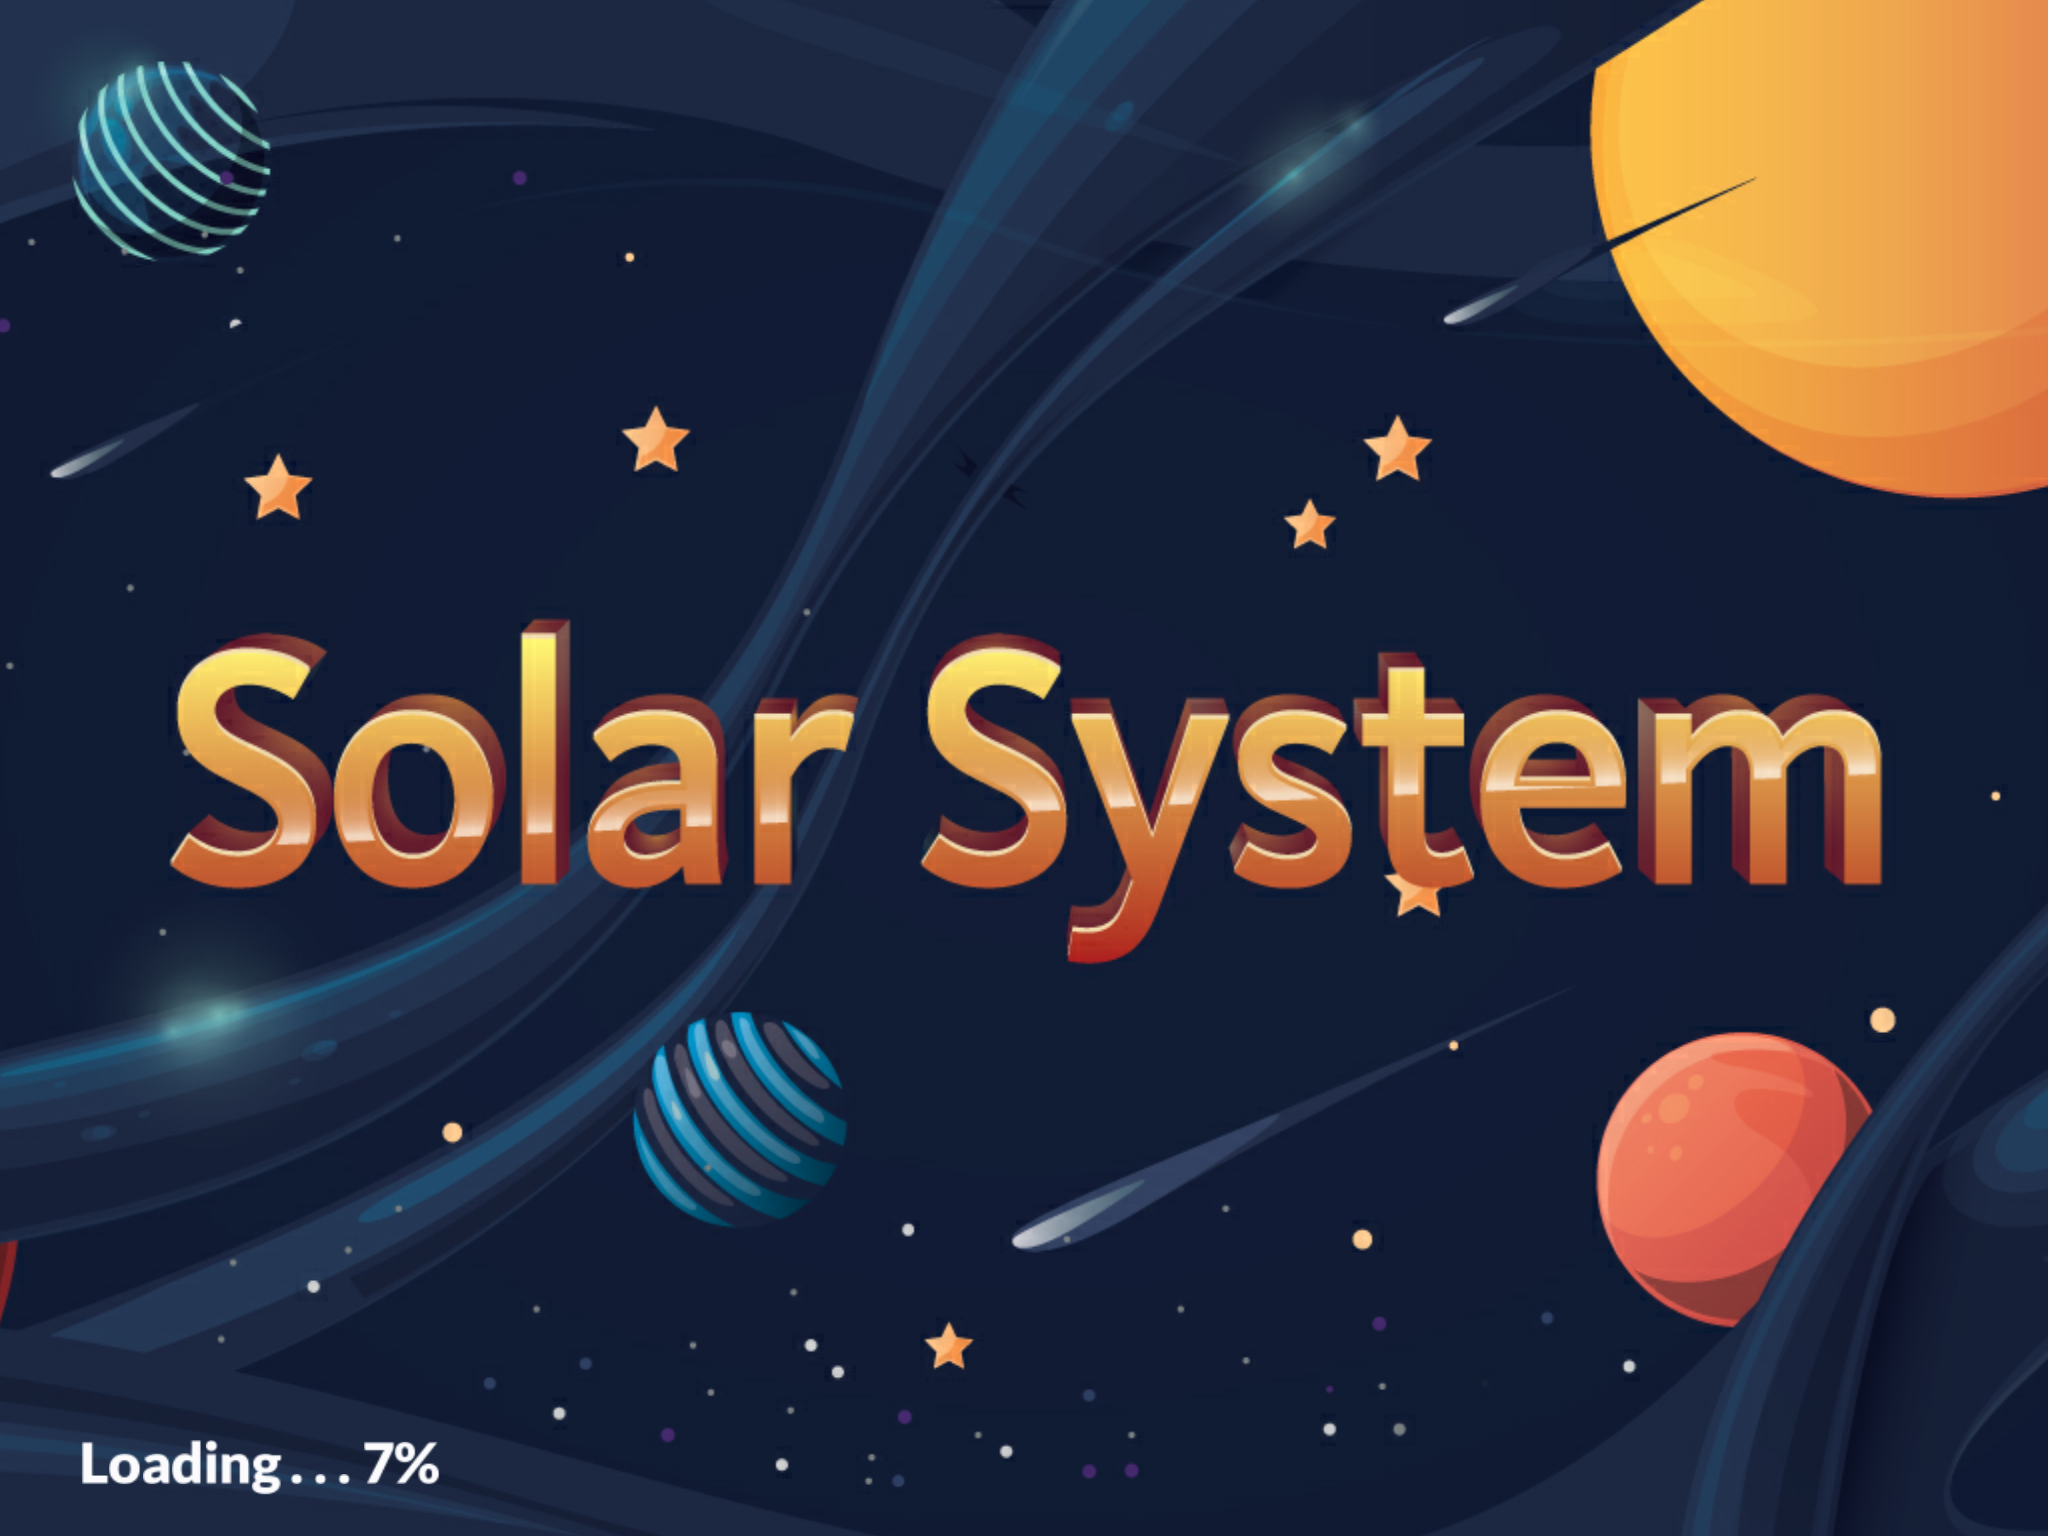 Solar System Png For Kids - Arloon Solar System Review for Teachers | Common Sense Education